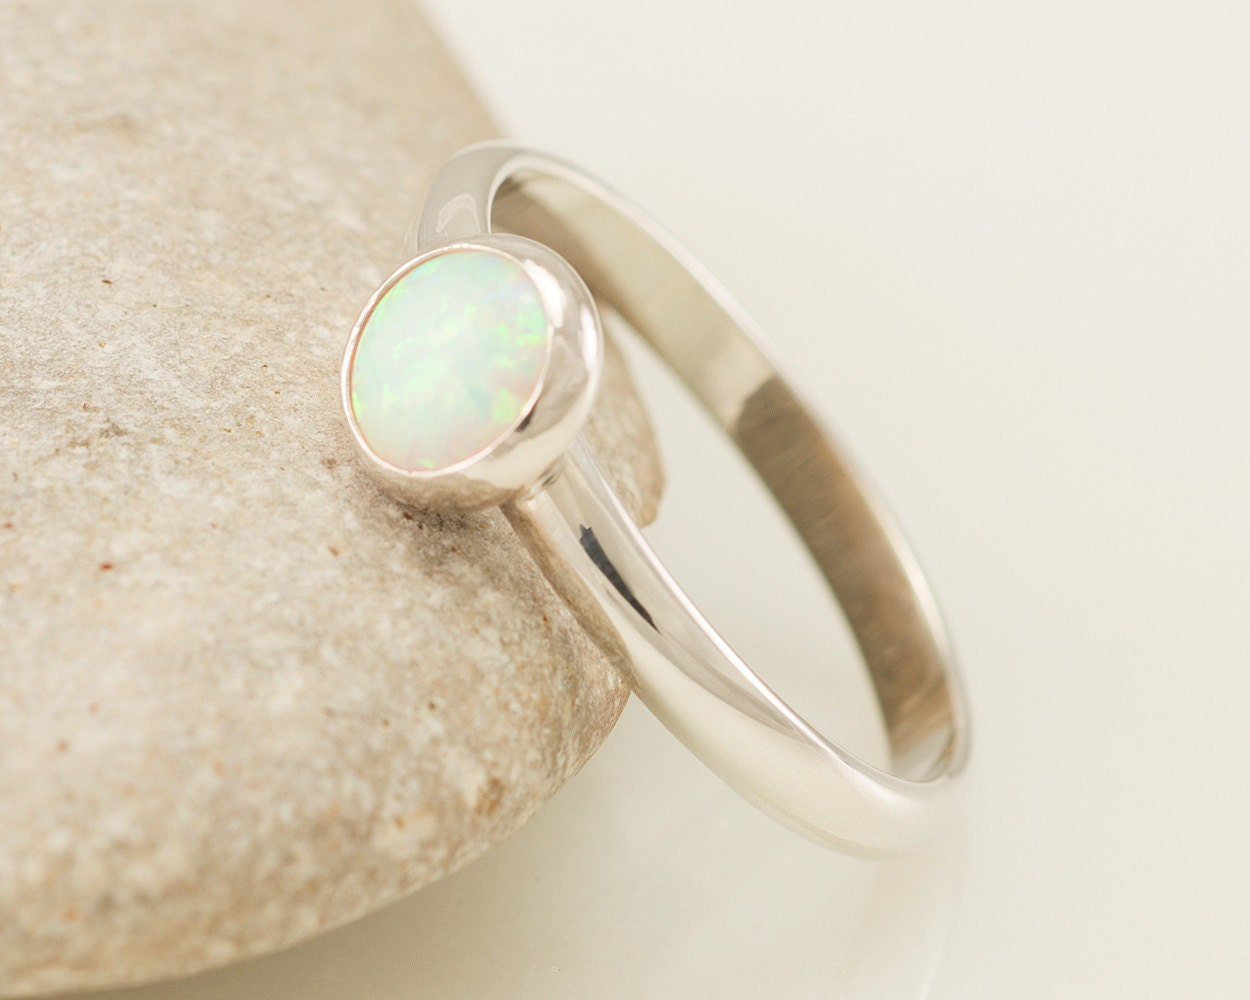 Opal Ring - Silver Opal Ring- Solitaire Ring- Opal Engagement Ring - Simple Modern Opal Ring- Sterling Silver Gemstone Ring